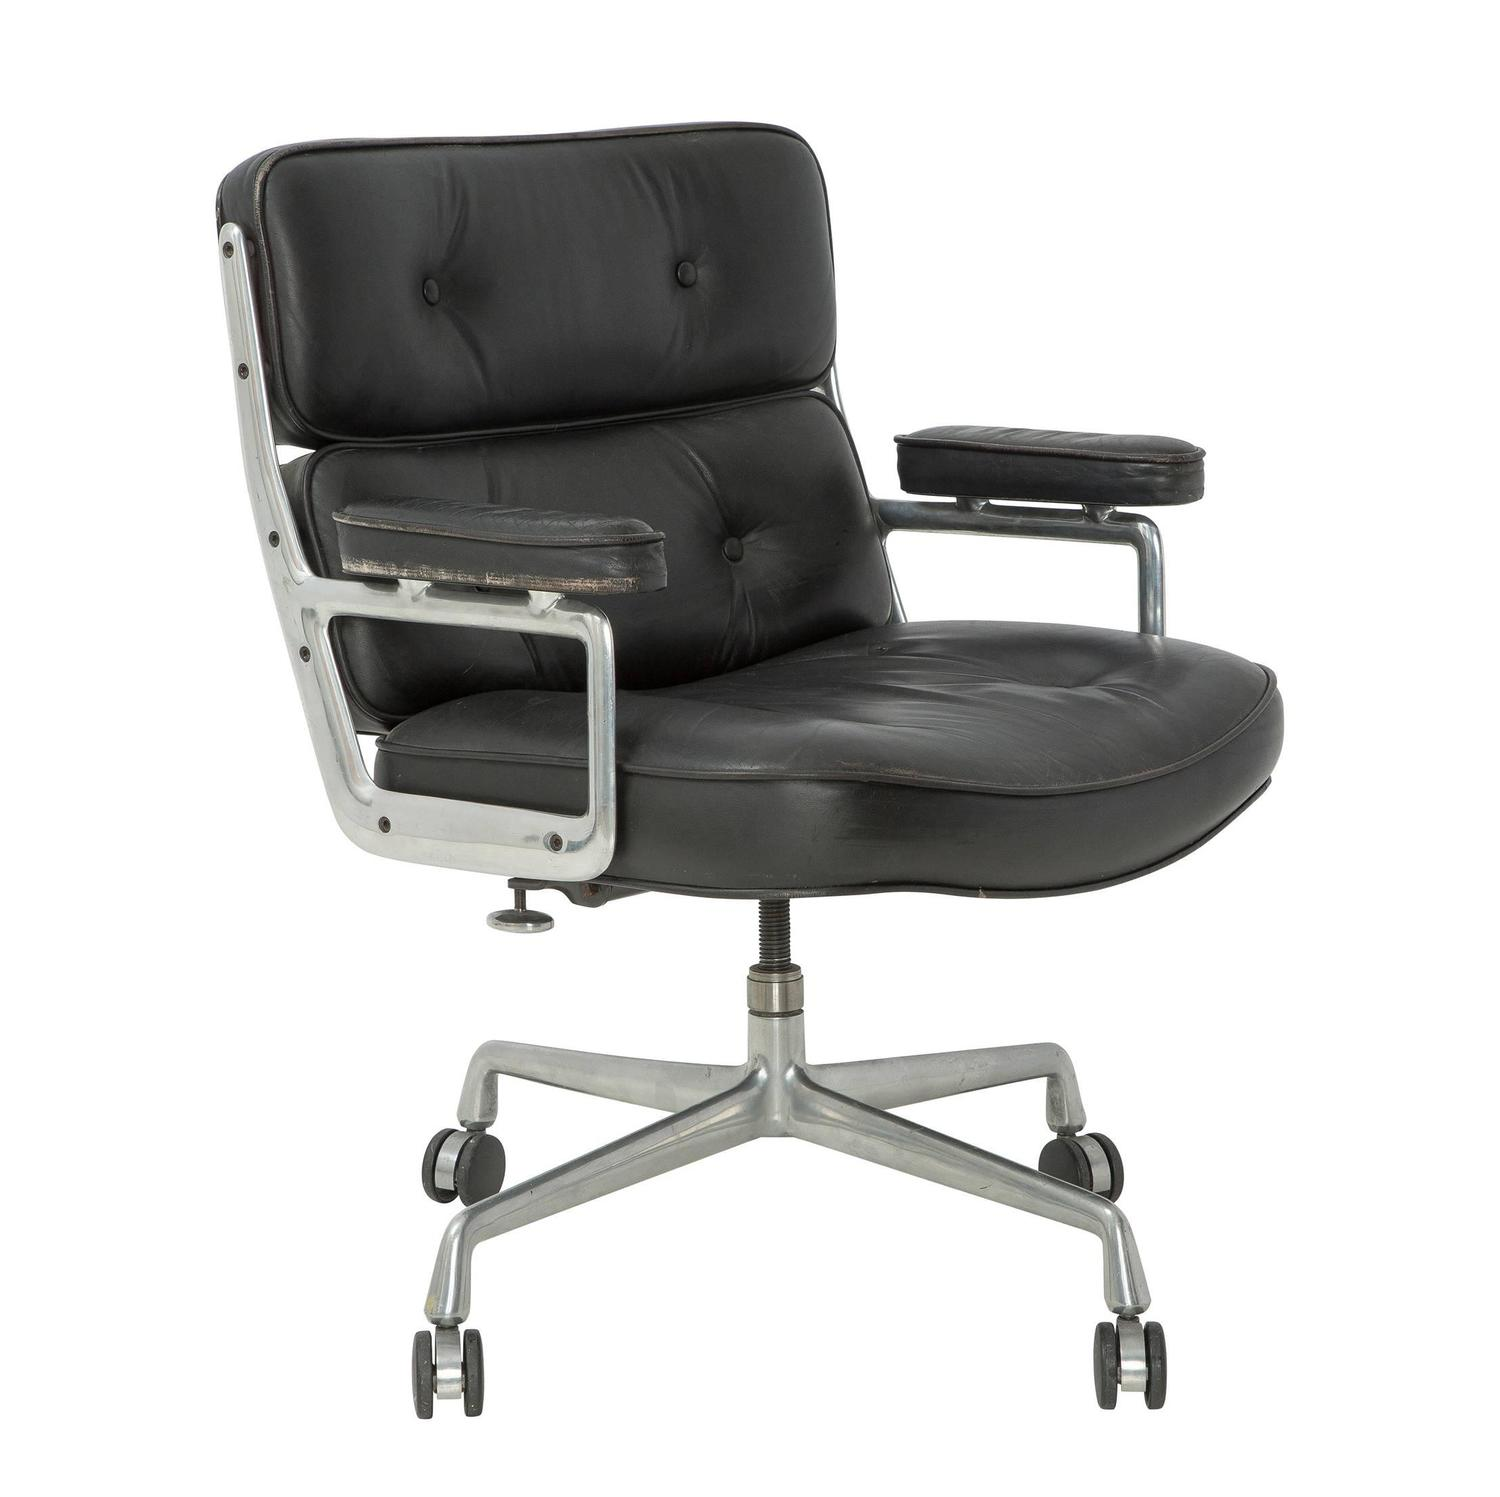 desk chair herman miller eames replica lounge time life office at 1stdibs